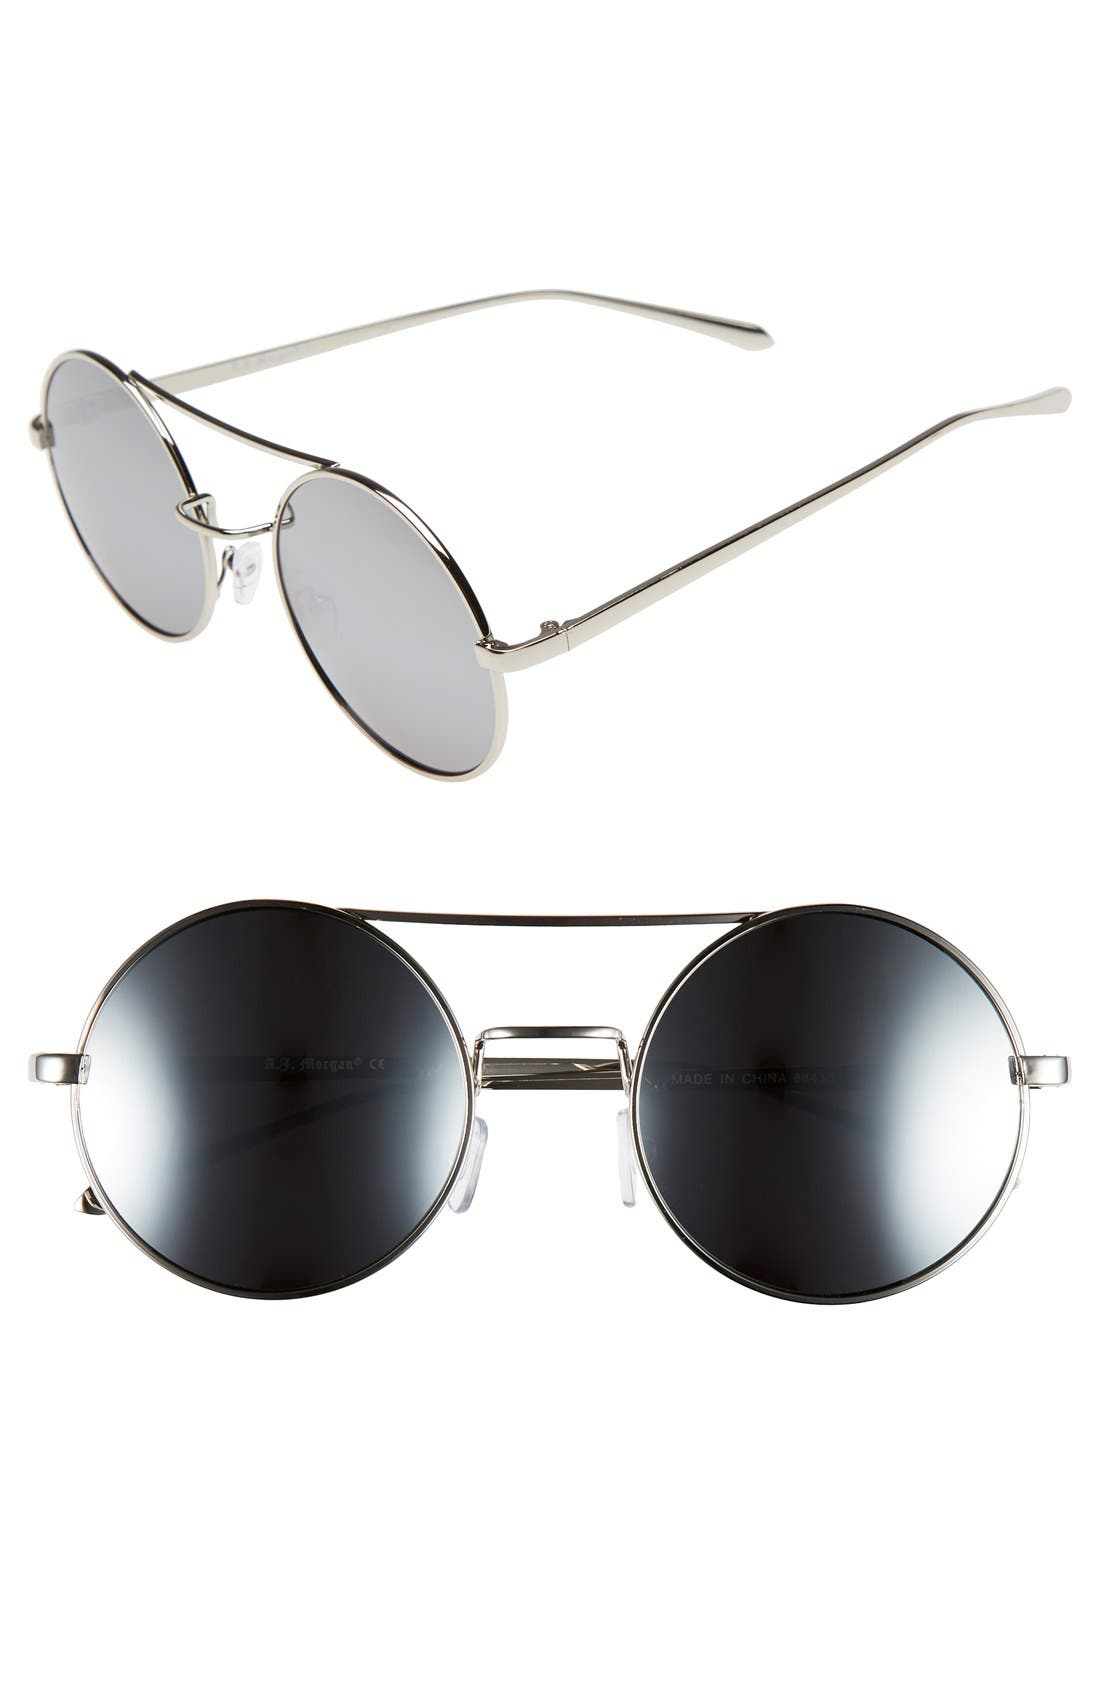 Main Image - A.J. Morgan 'Eclipse' 54mm Round Mirror Lens Sunglasses